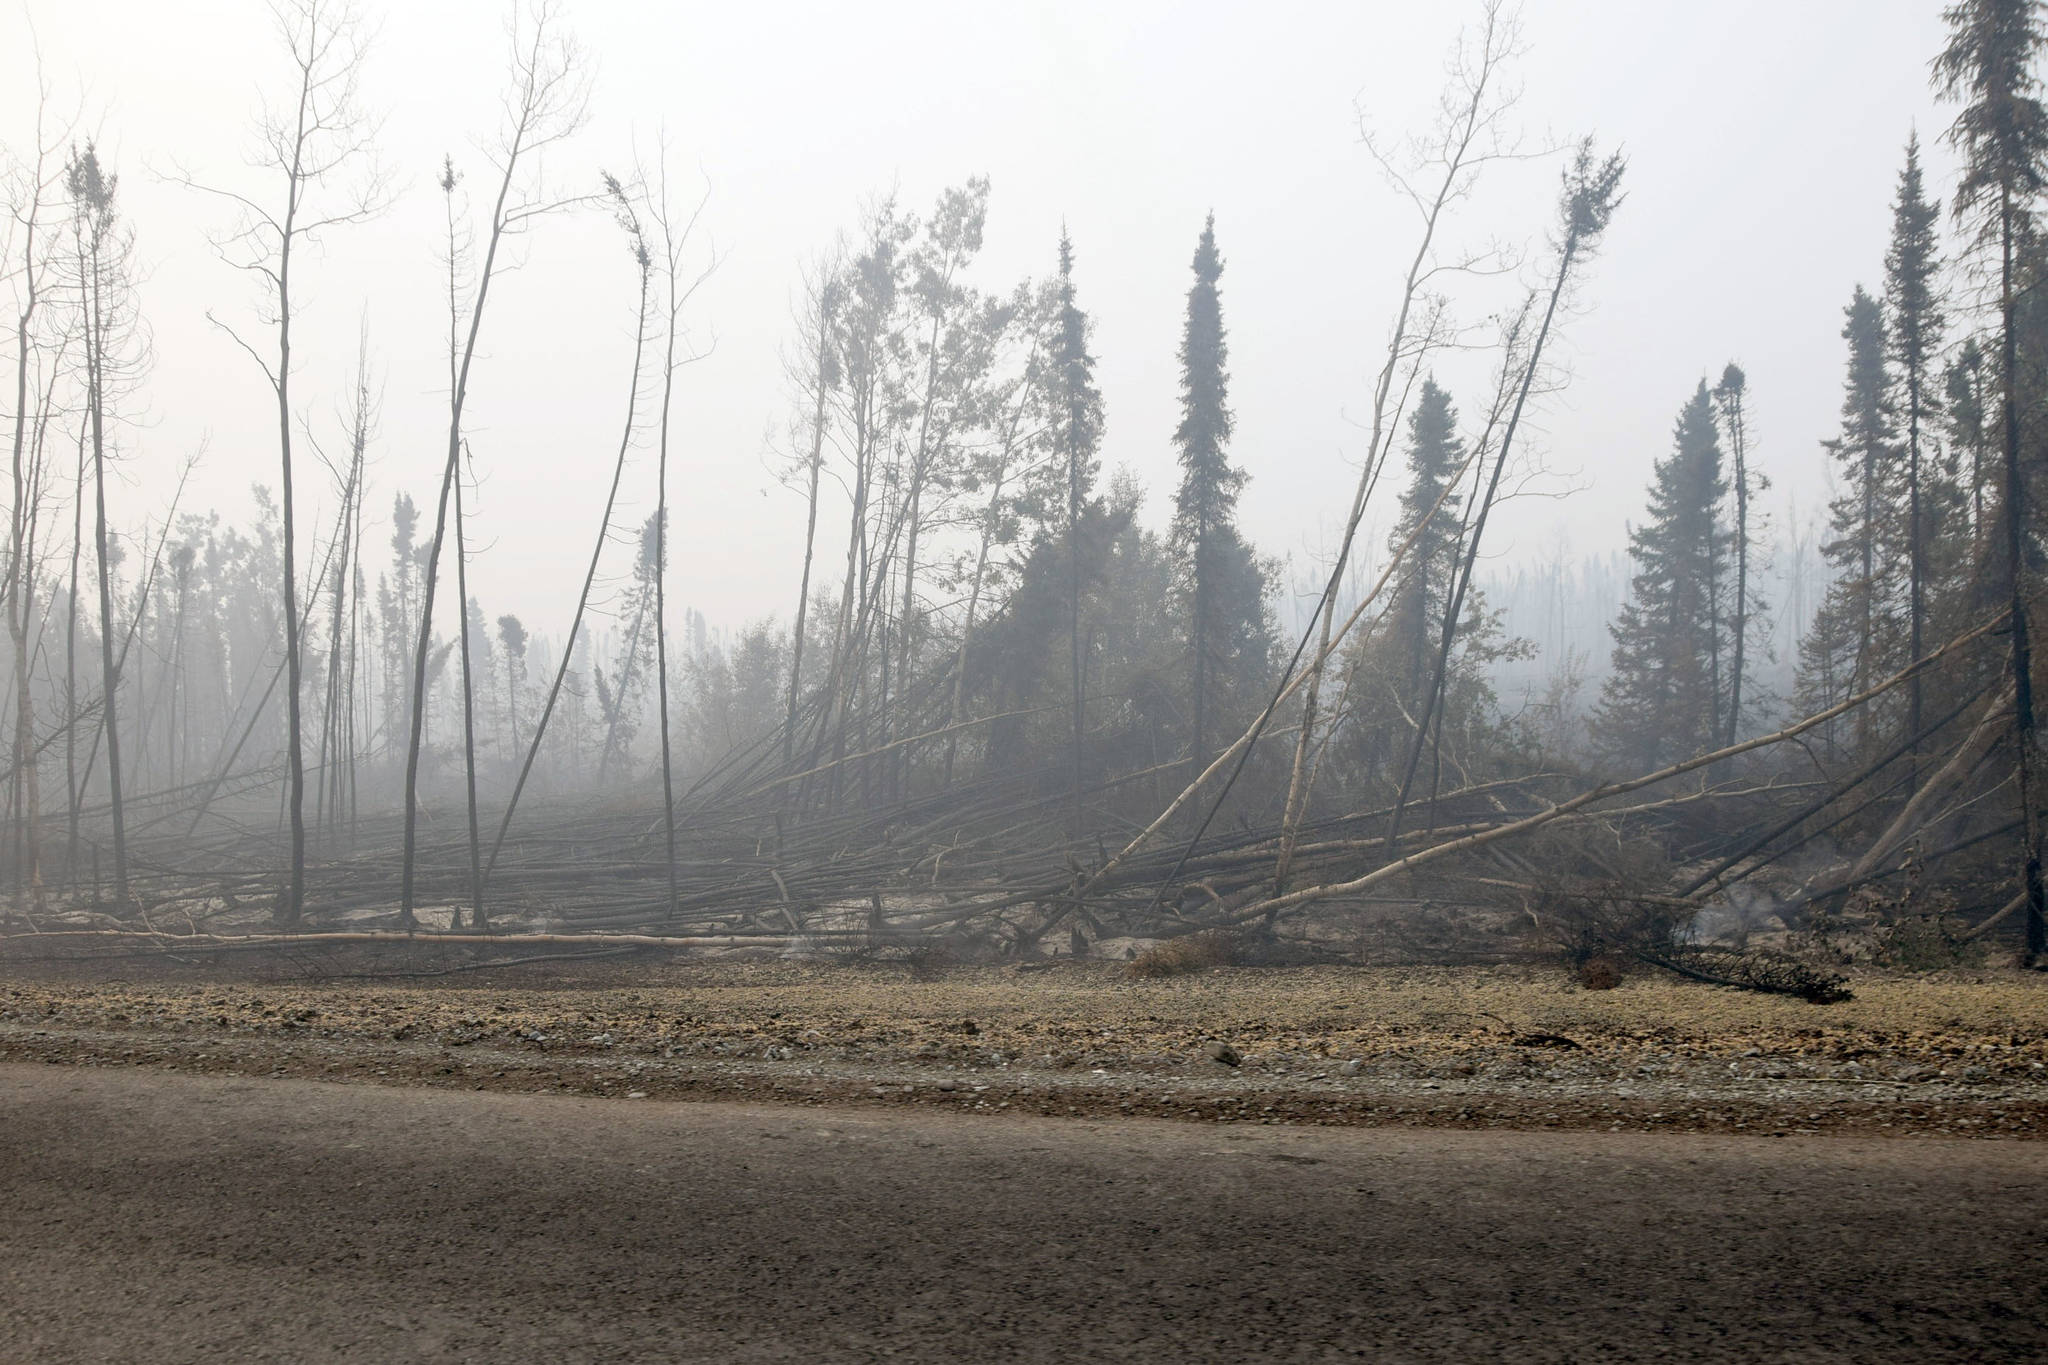 Trees burned by the Swan Lake Fire and knocked down by gusts of wind can be seen here along the Sterling Highway on Aug. 30, 2019. (Photo by Brian Mazurek/Peninsula Clarion)